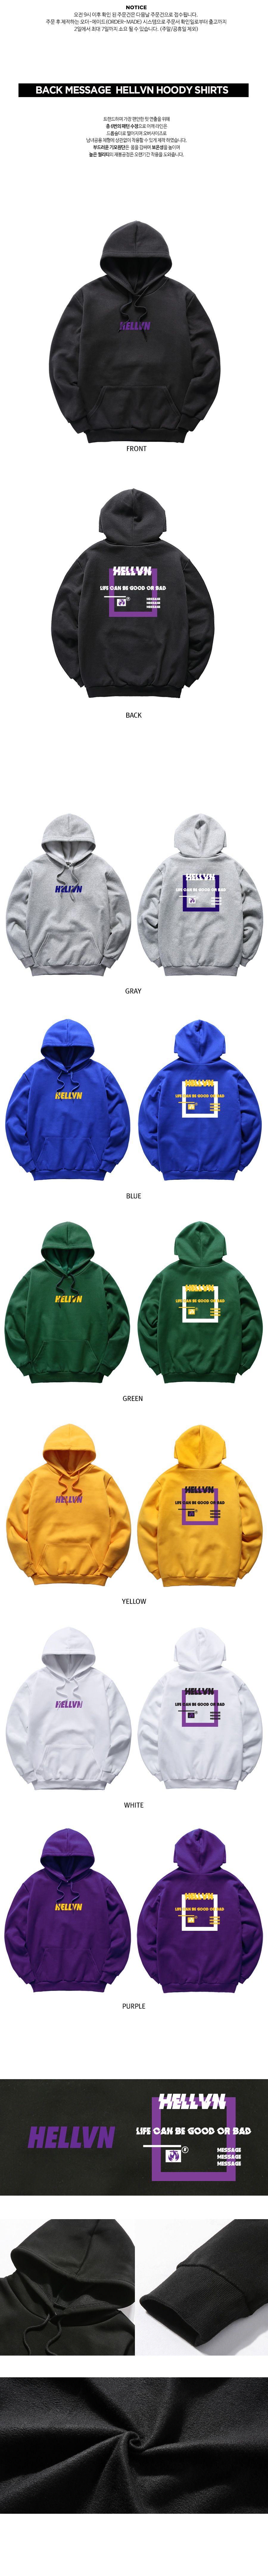 [헬븐] Back Message Hellvn Hoody shirts - 후드티 (SBHH8S-010)